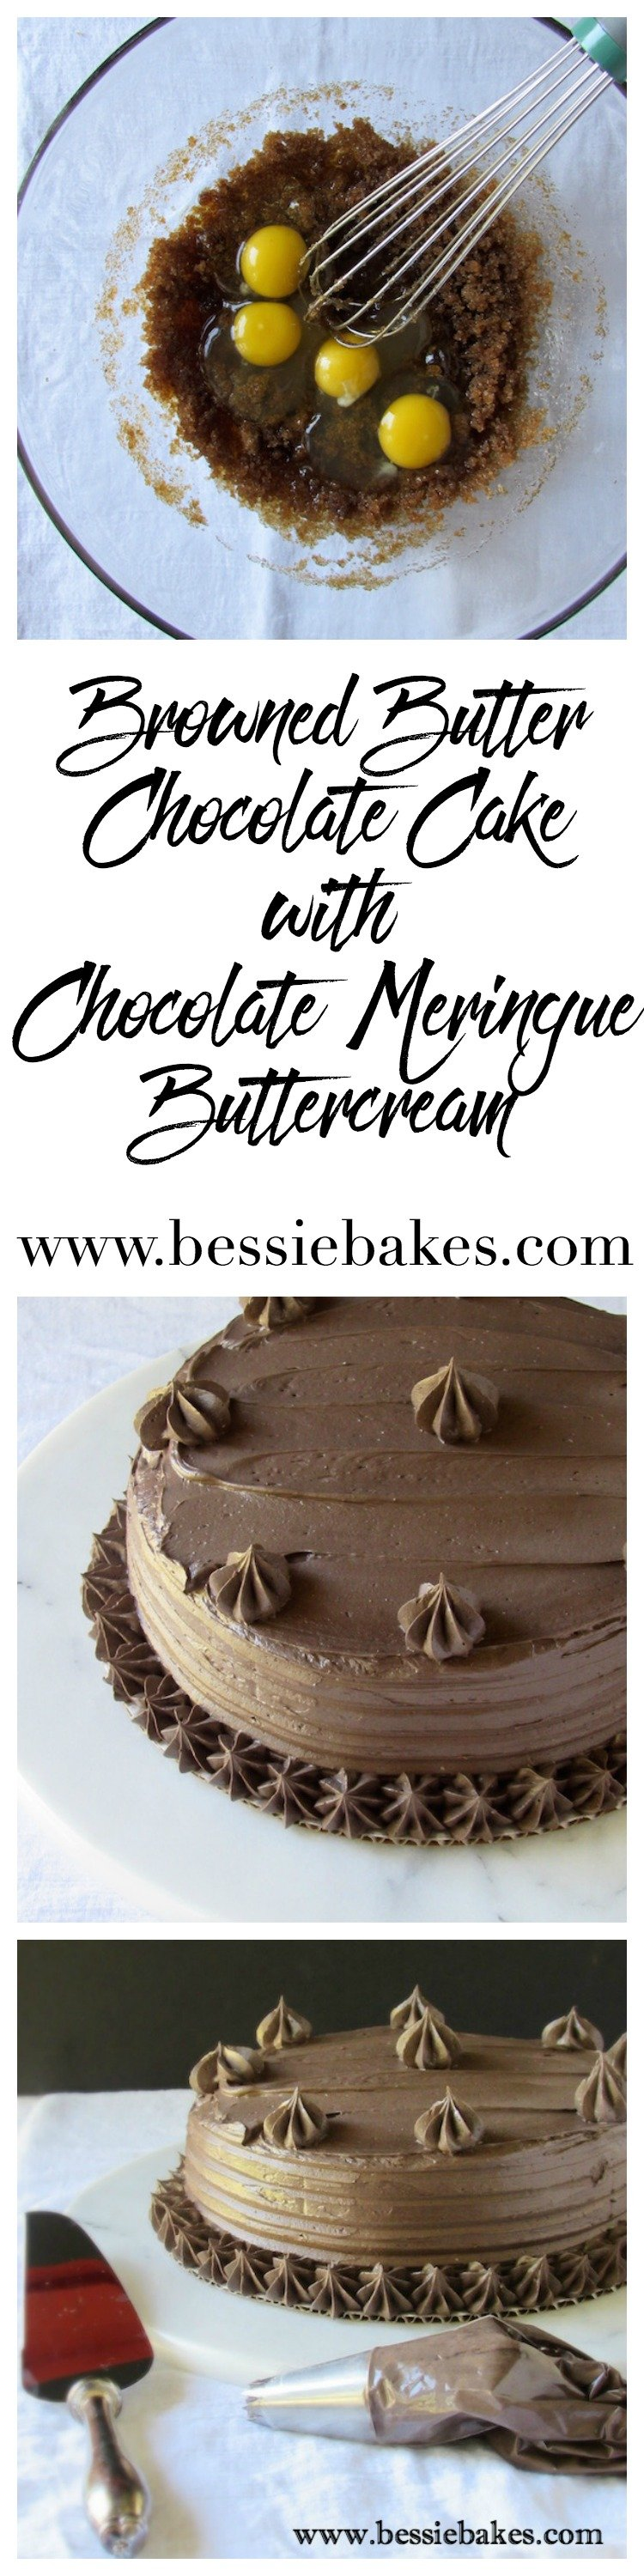 Browned Butter Chocolate Cake Pinterest